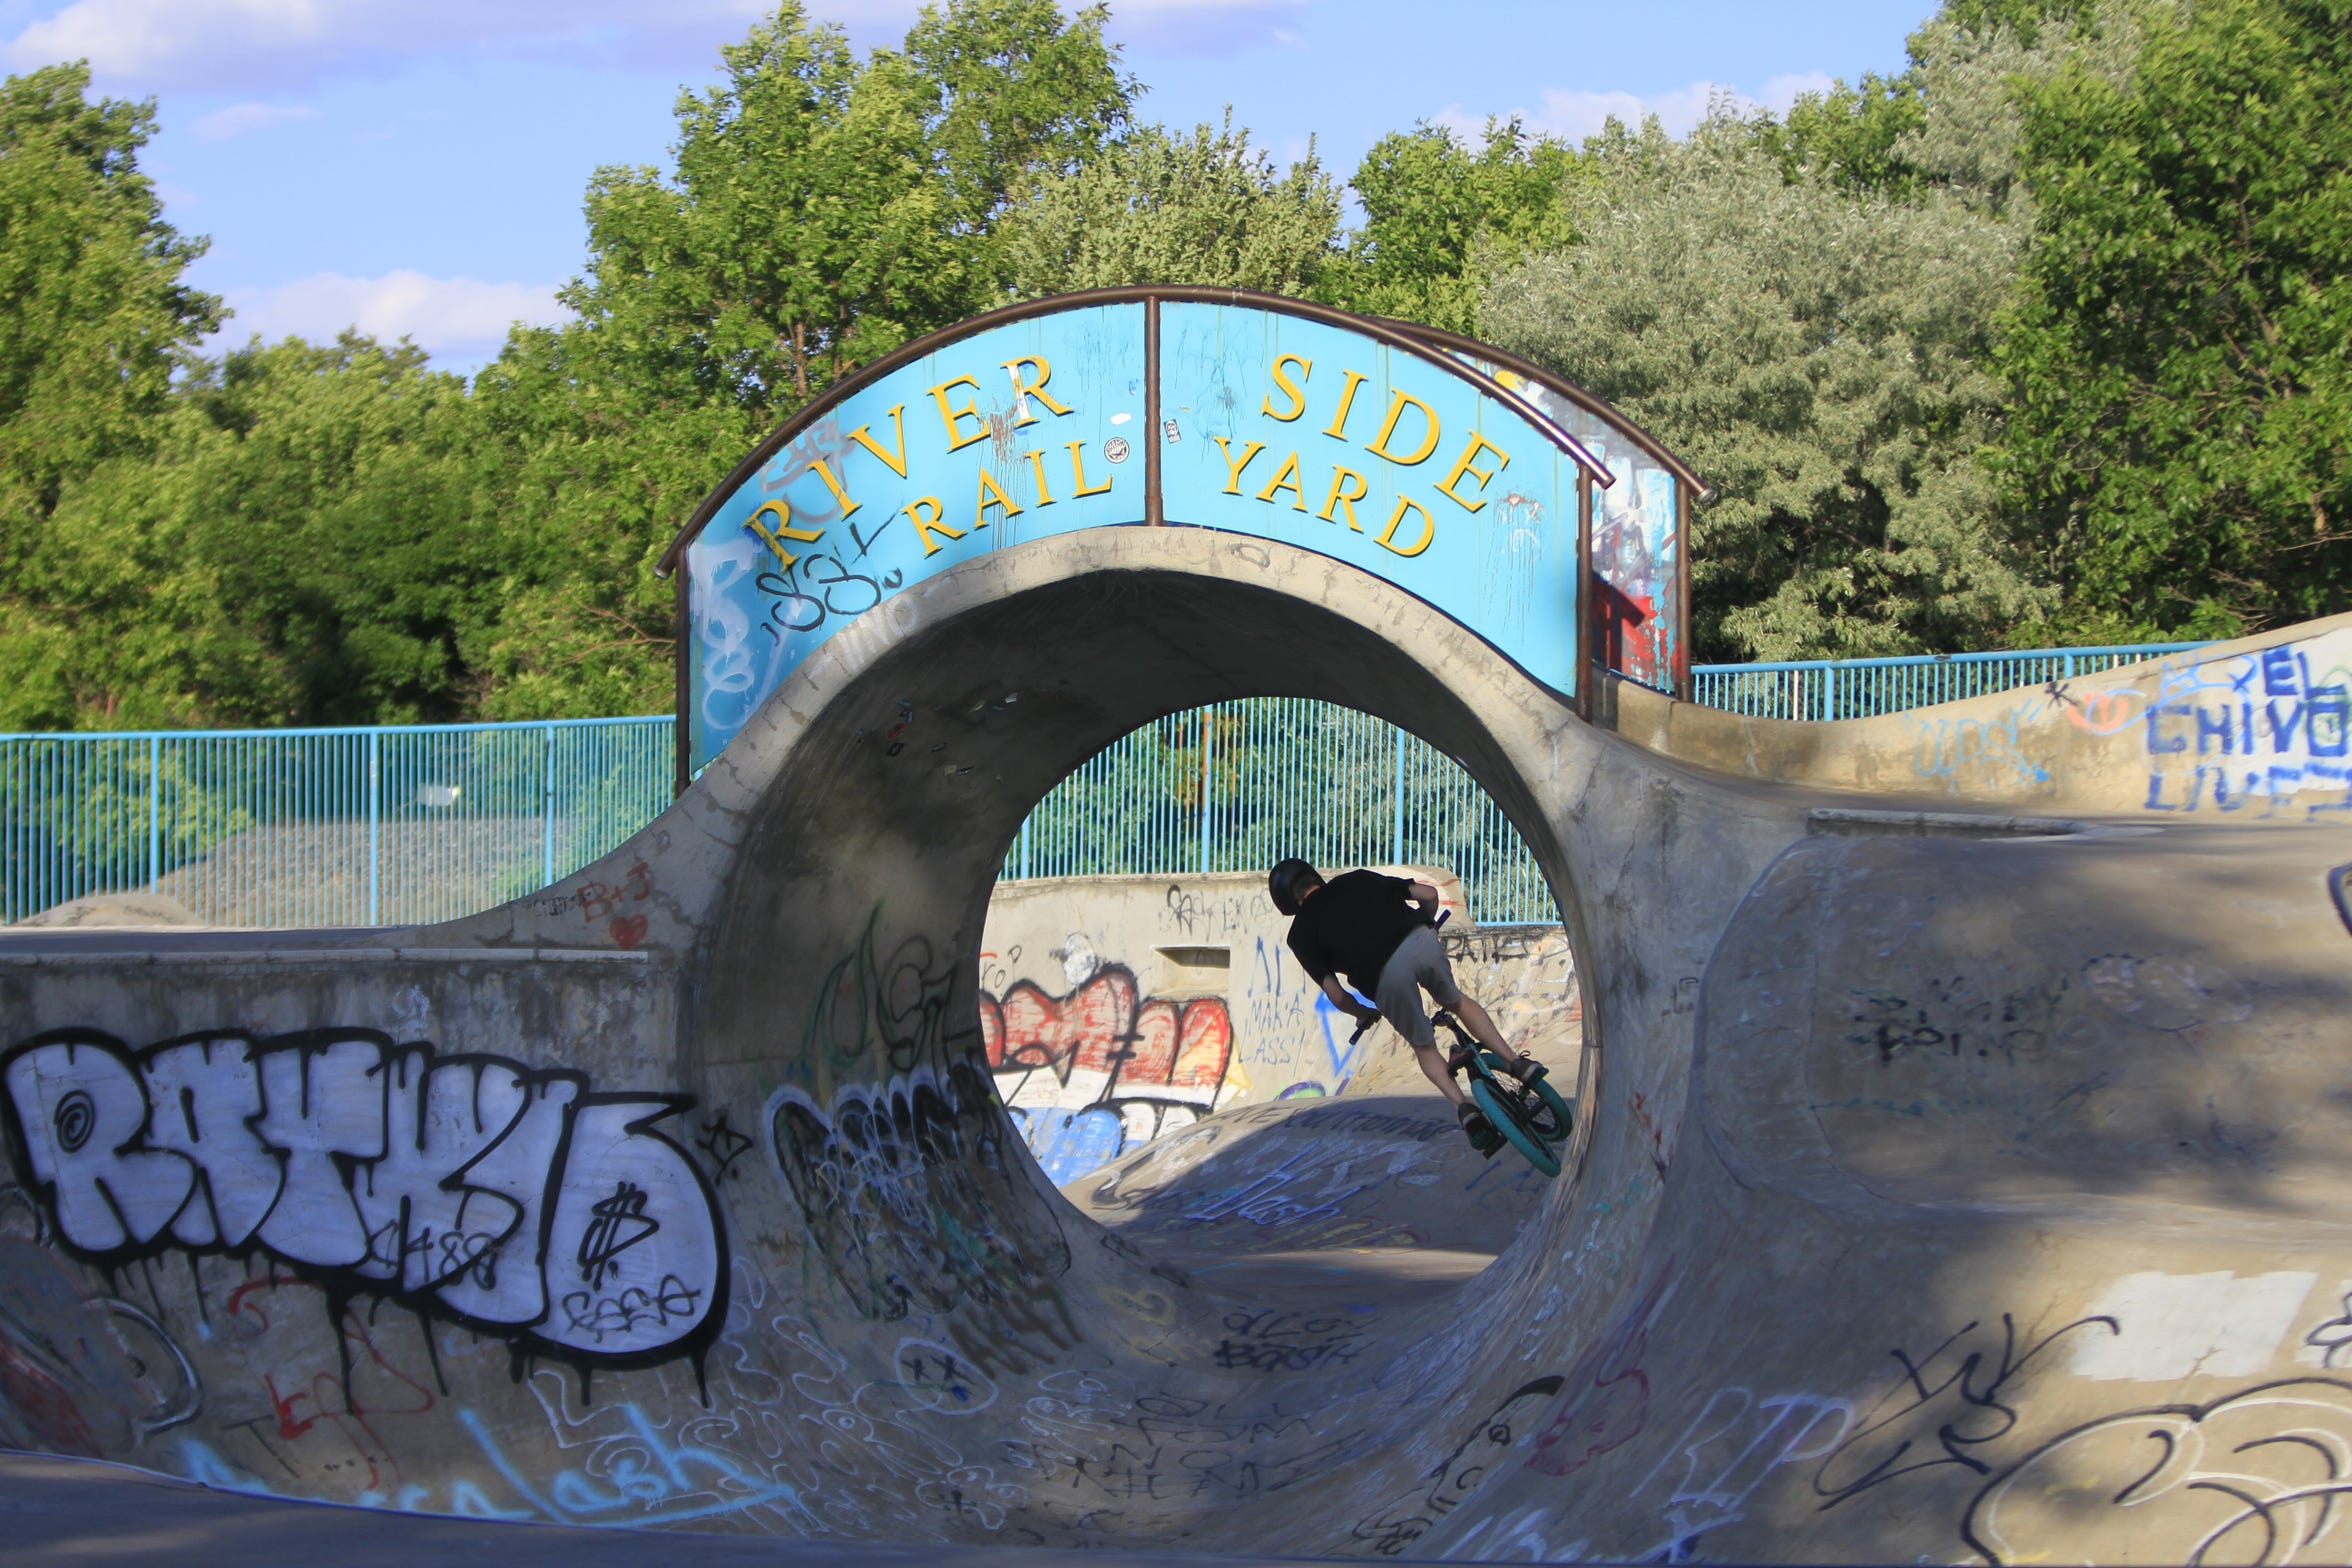 Jackie Swartz at riding at Riverside Railyard Skate Park on Thursday evening